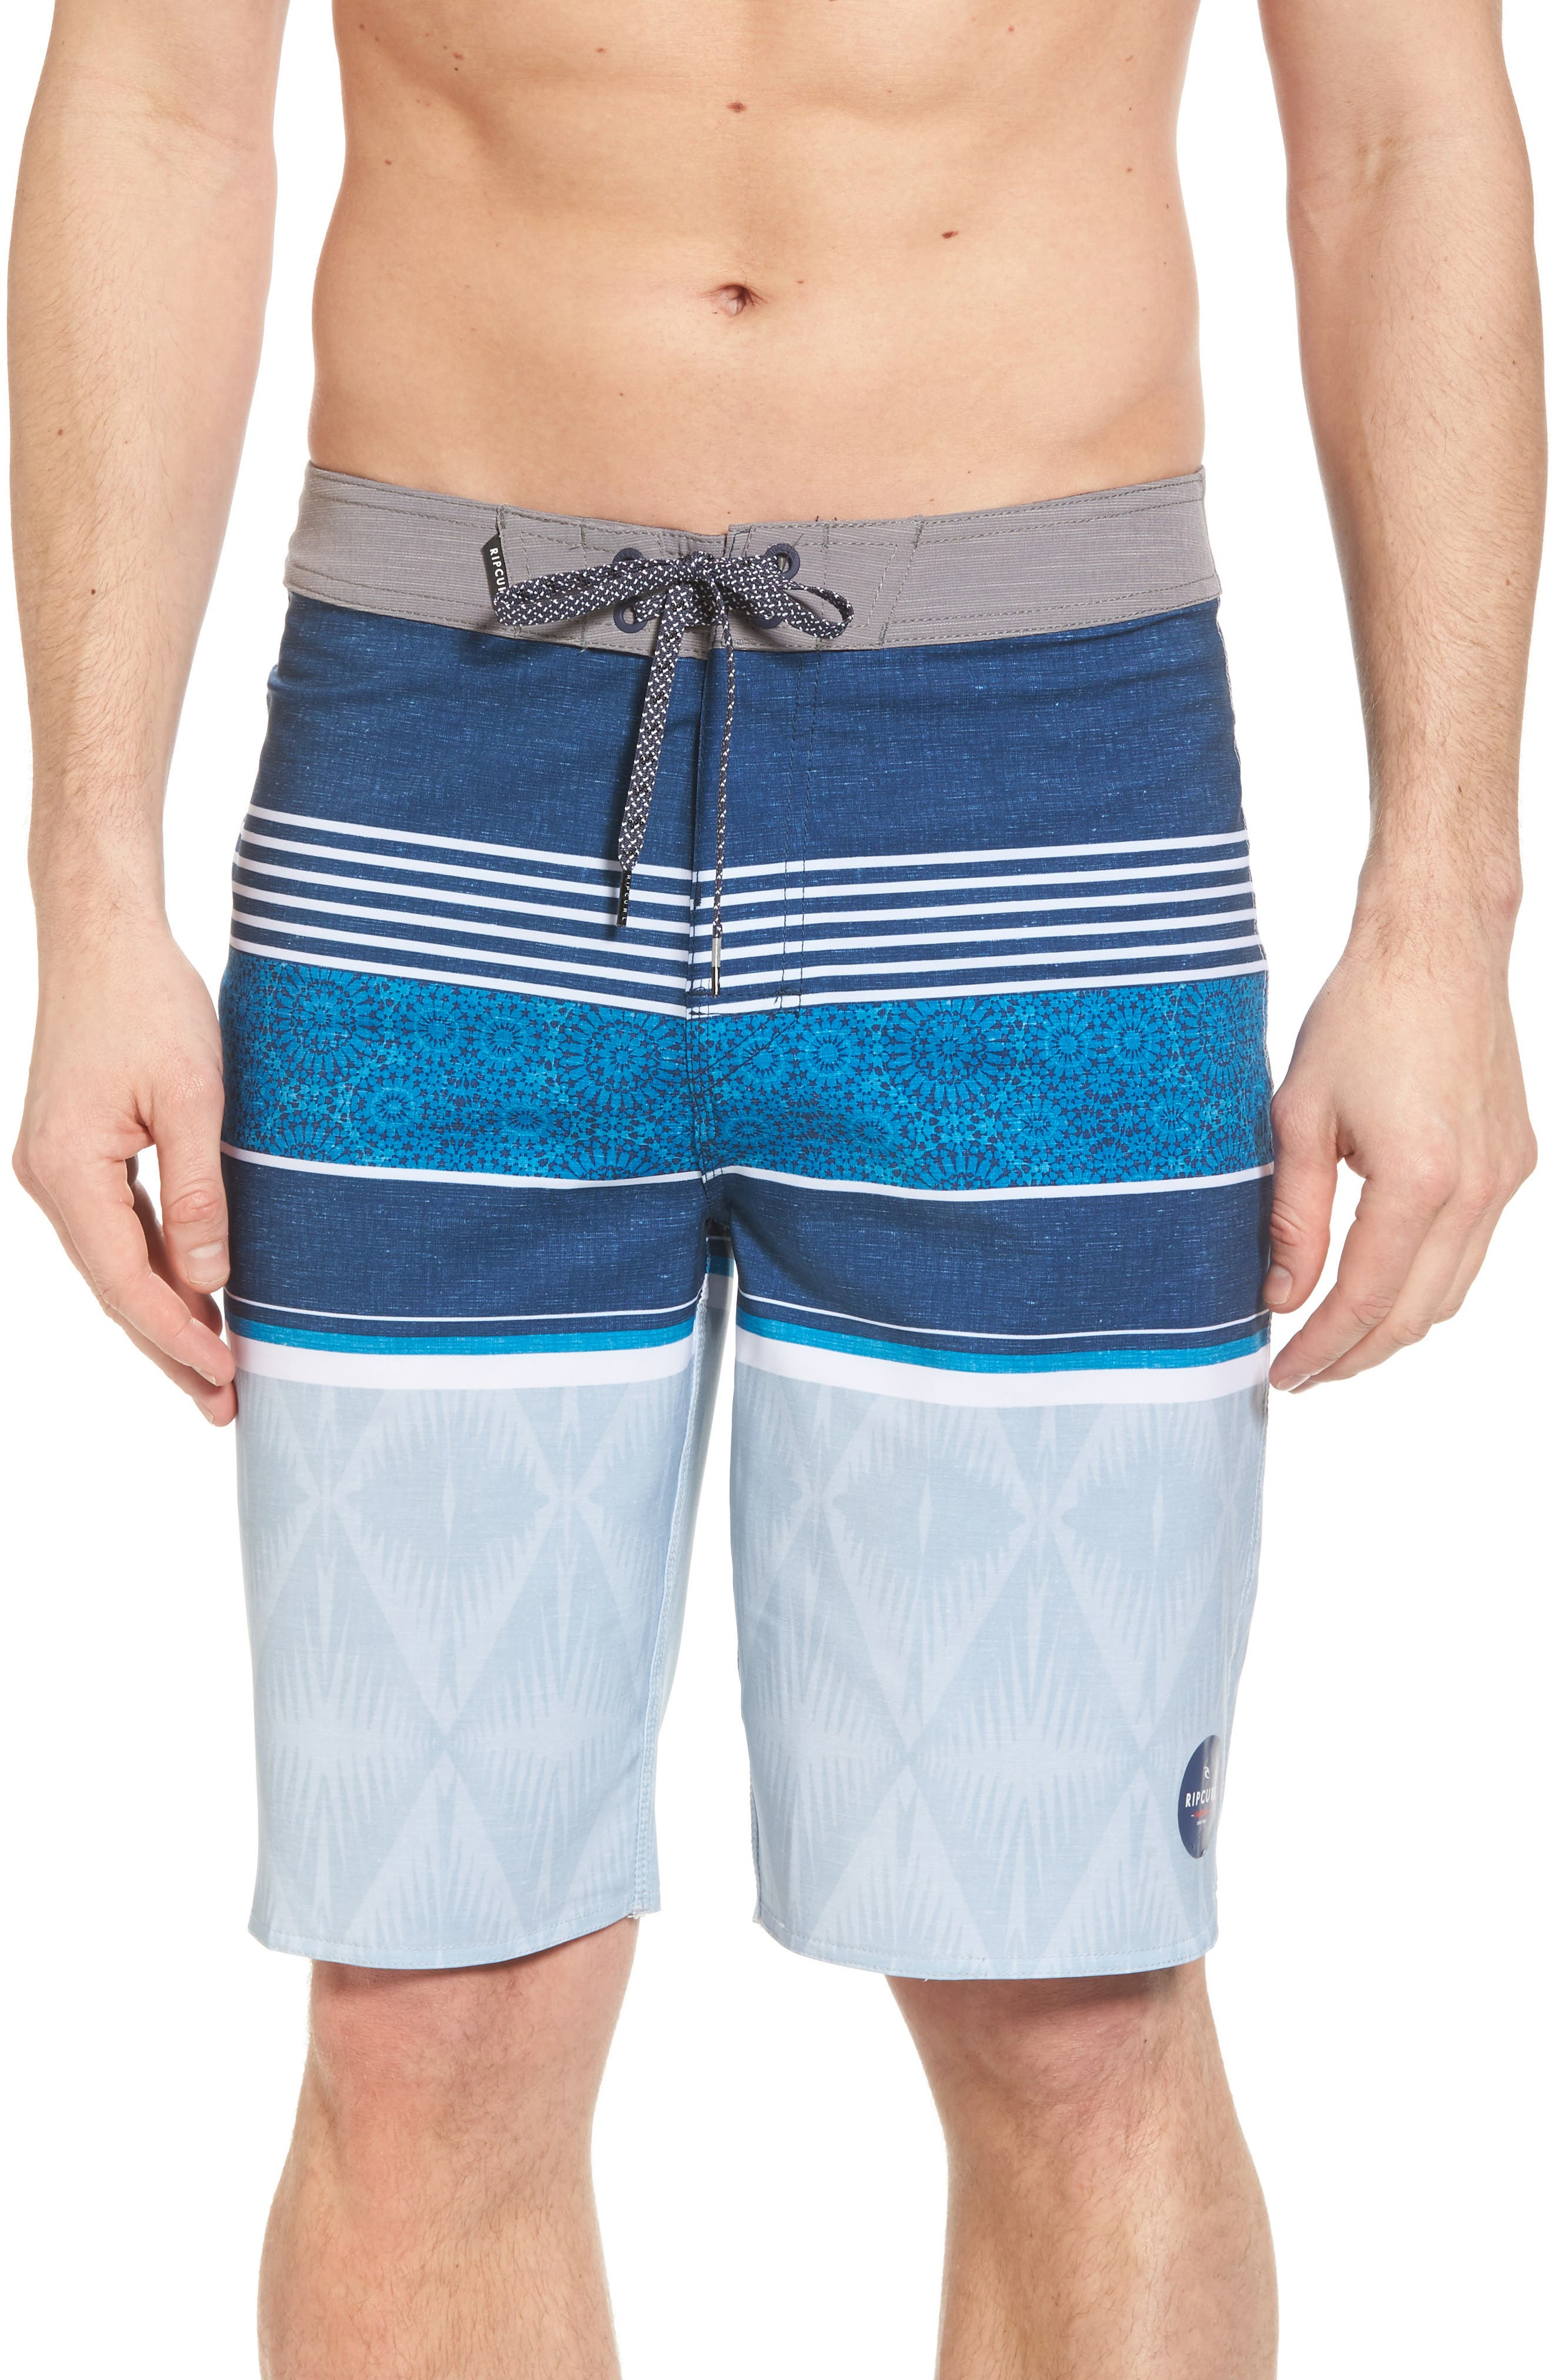 Mirage Sessions Board Shorts,                         Main,                         color, Navy